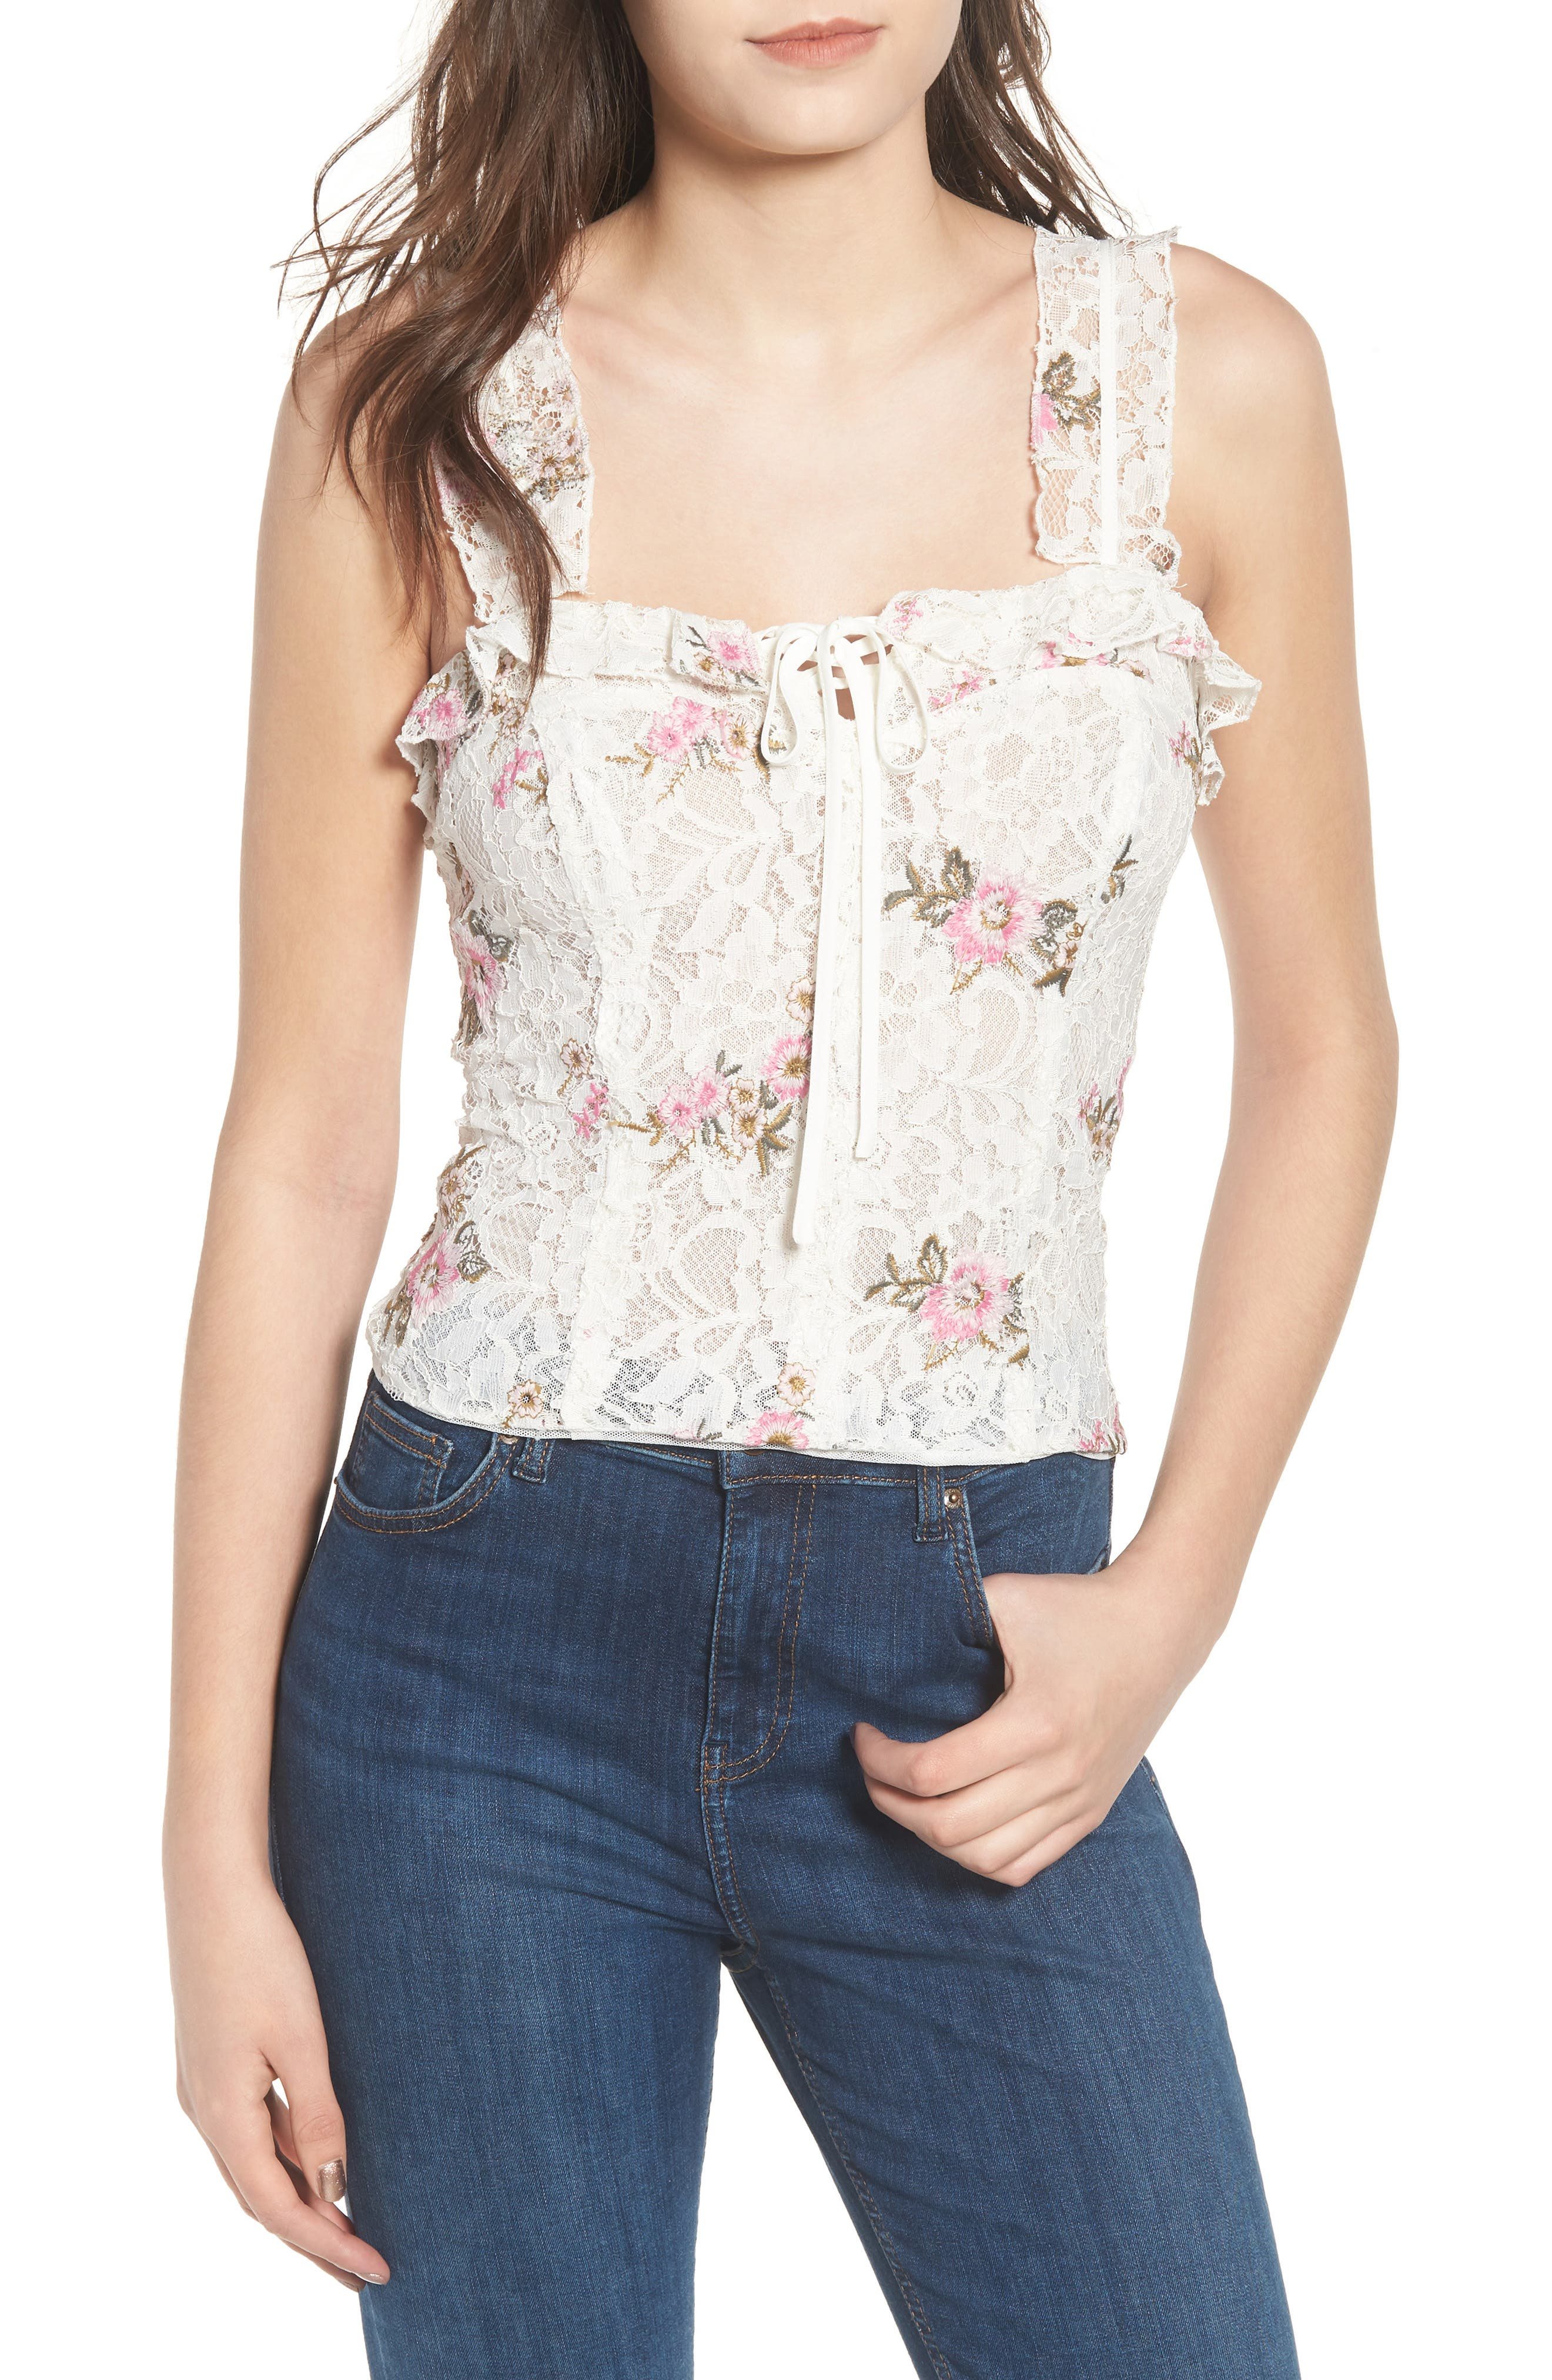 Acerra Lace-Up Lace Top,                             Main thumbnail 1, color,                             Ivory Embroidered Lace